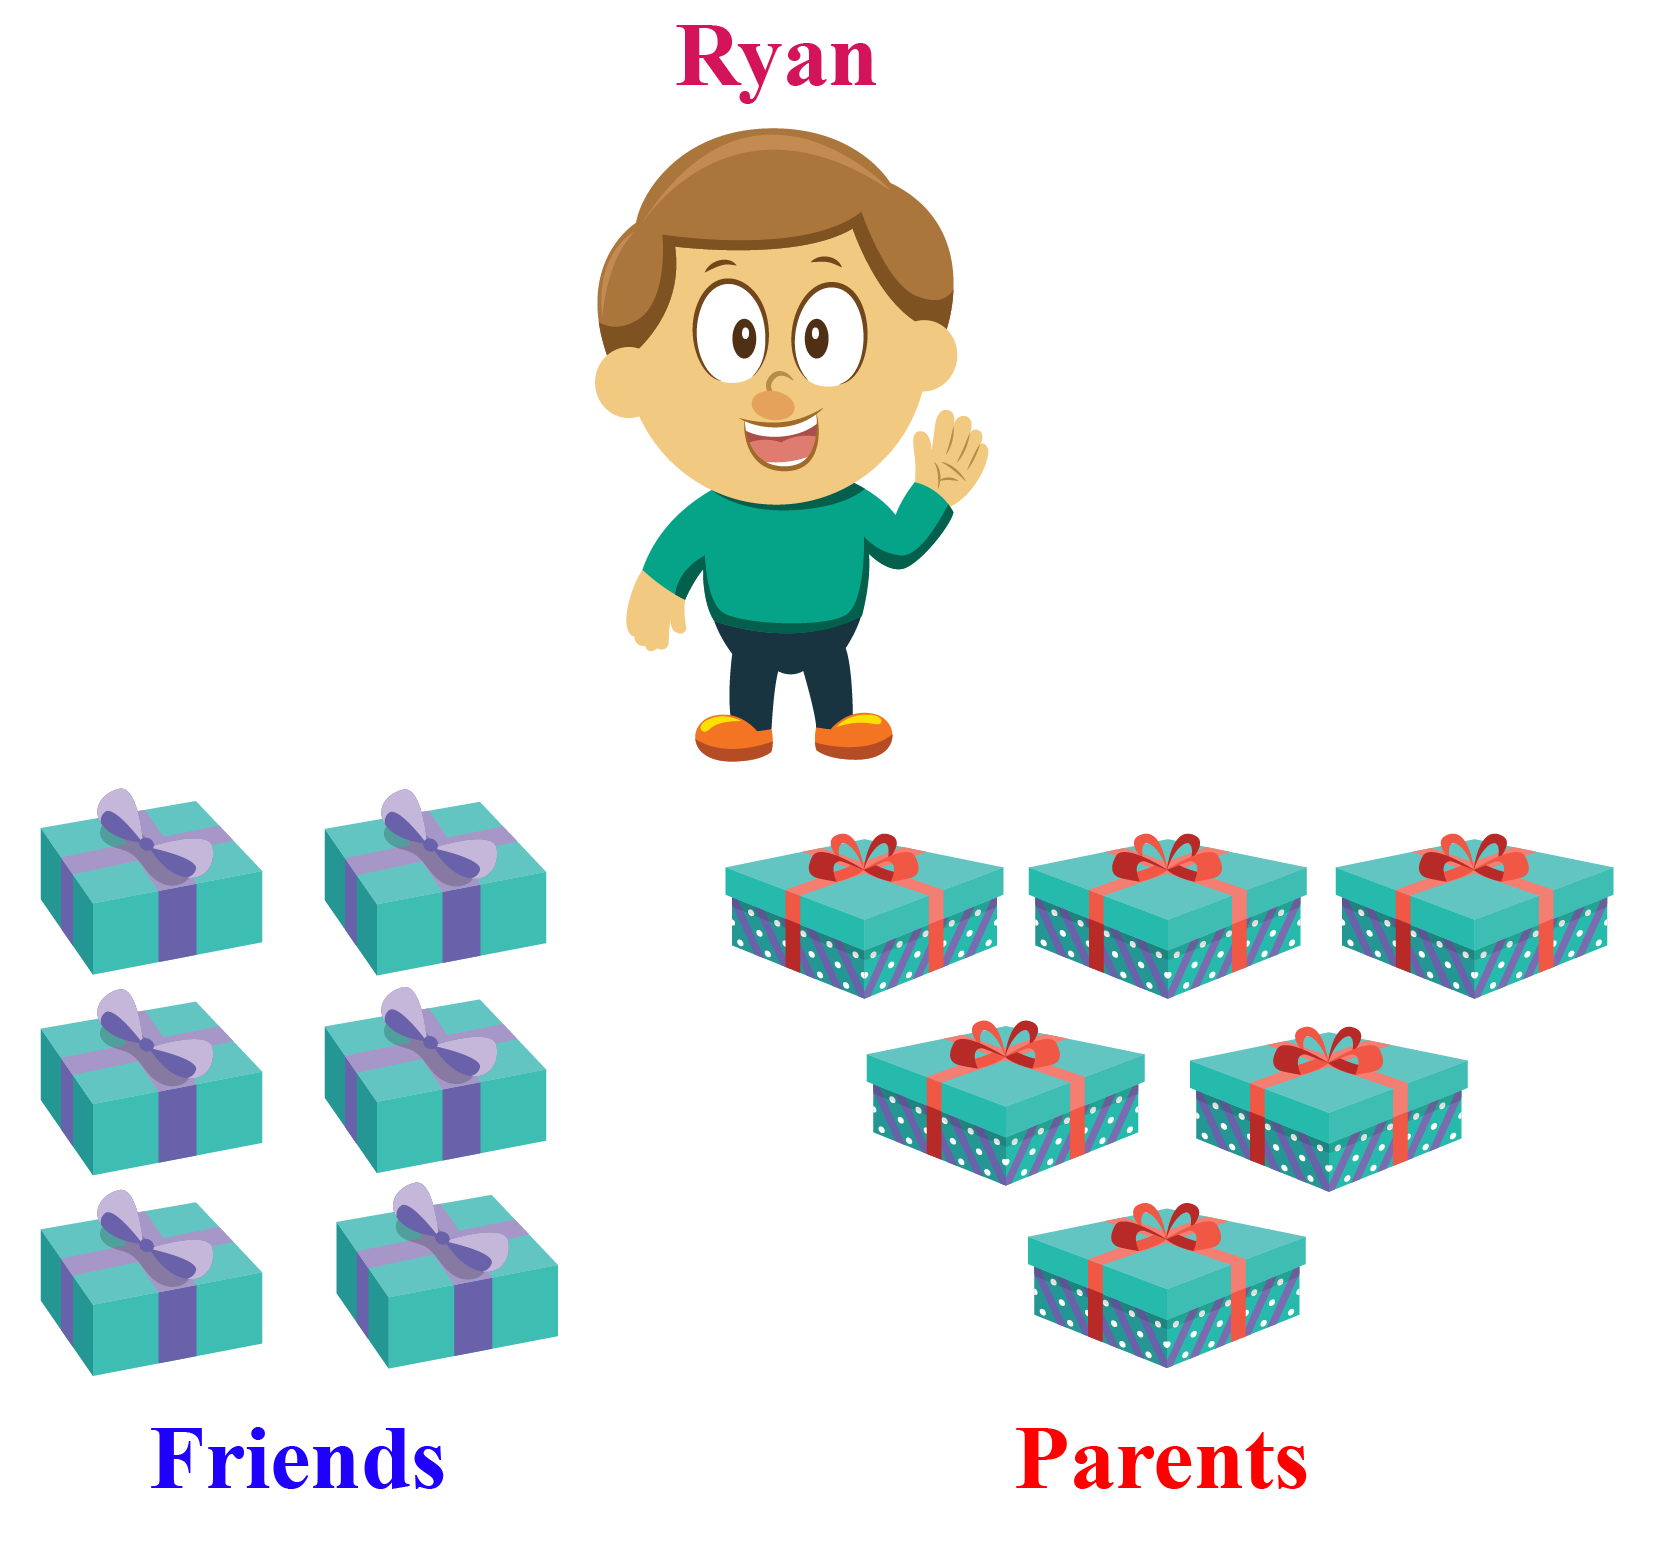 It is Smith's birthday party. Three of his friends are bringing 2 gifts each for him, while both of his parents are bringing 3 gifts each for him.